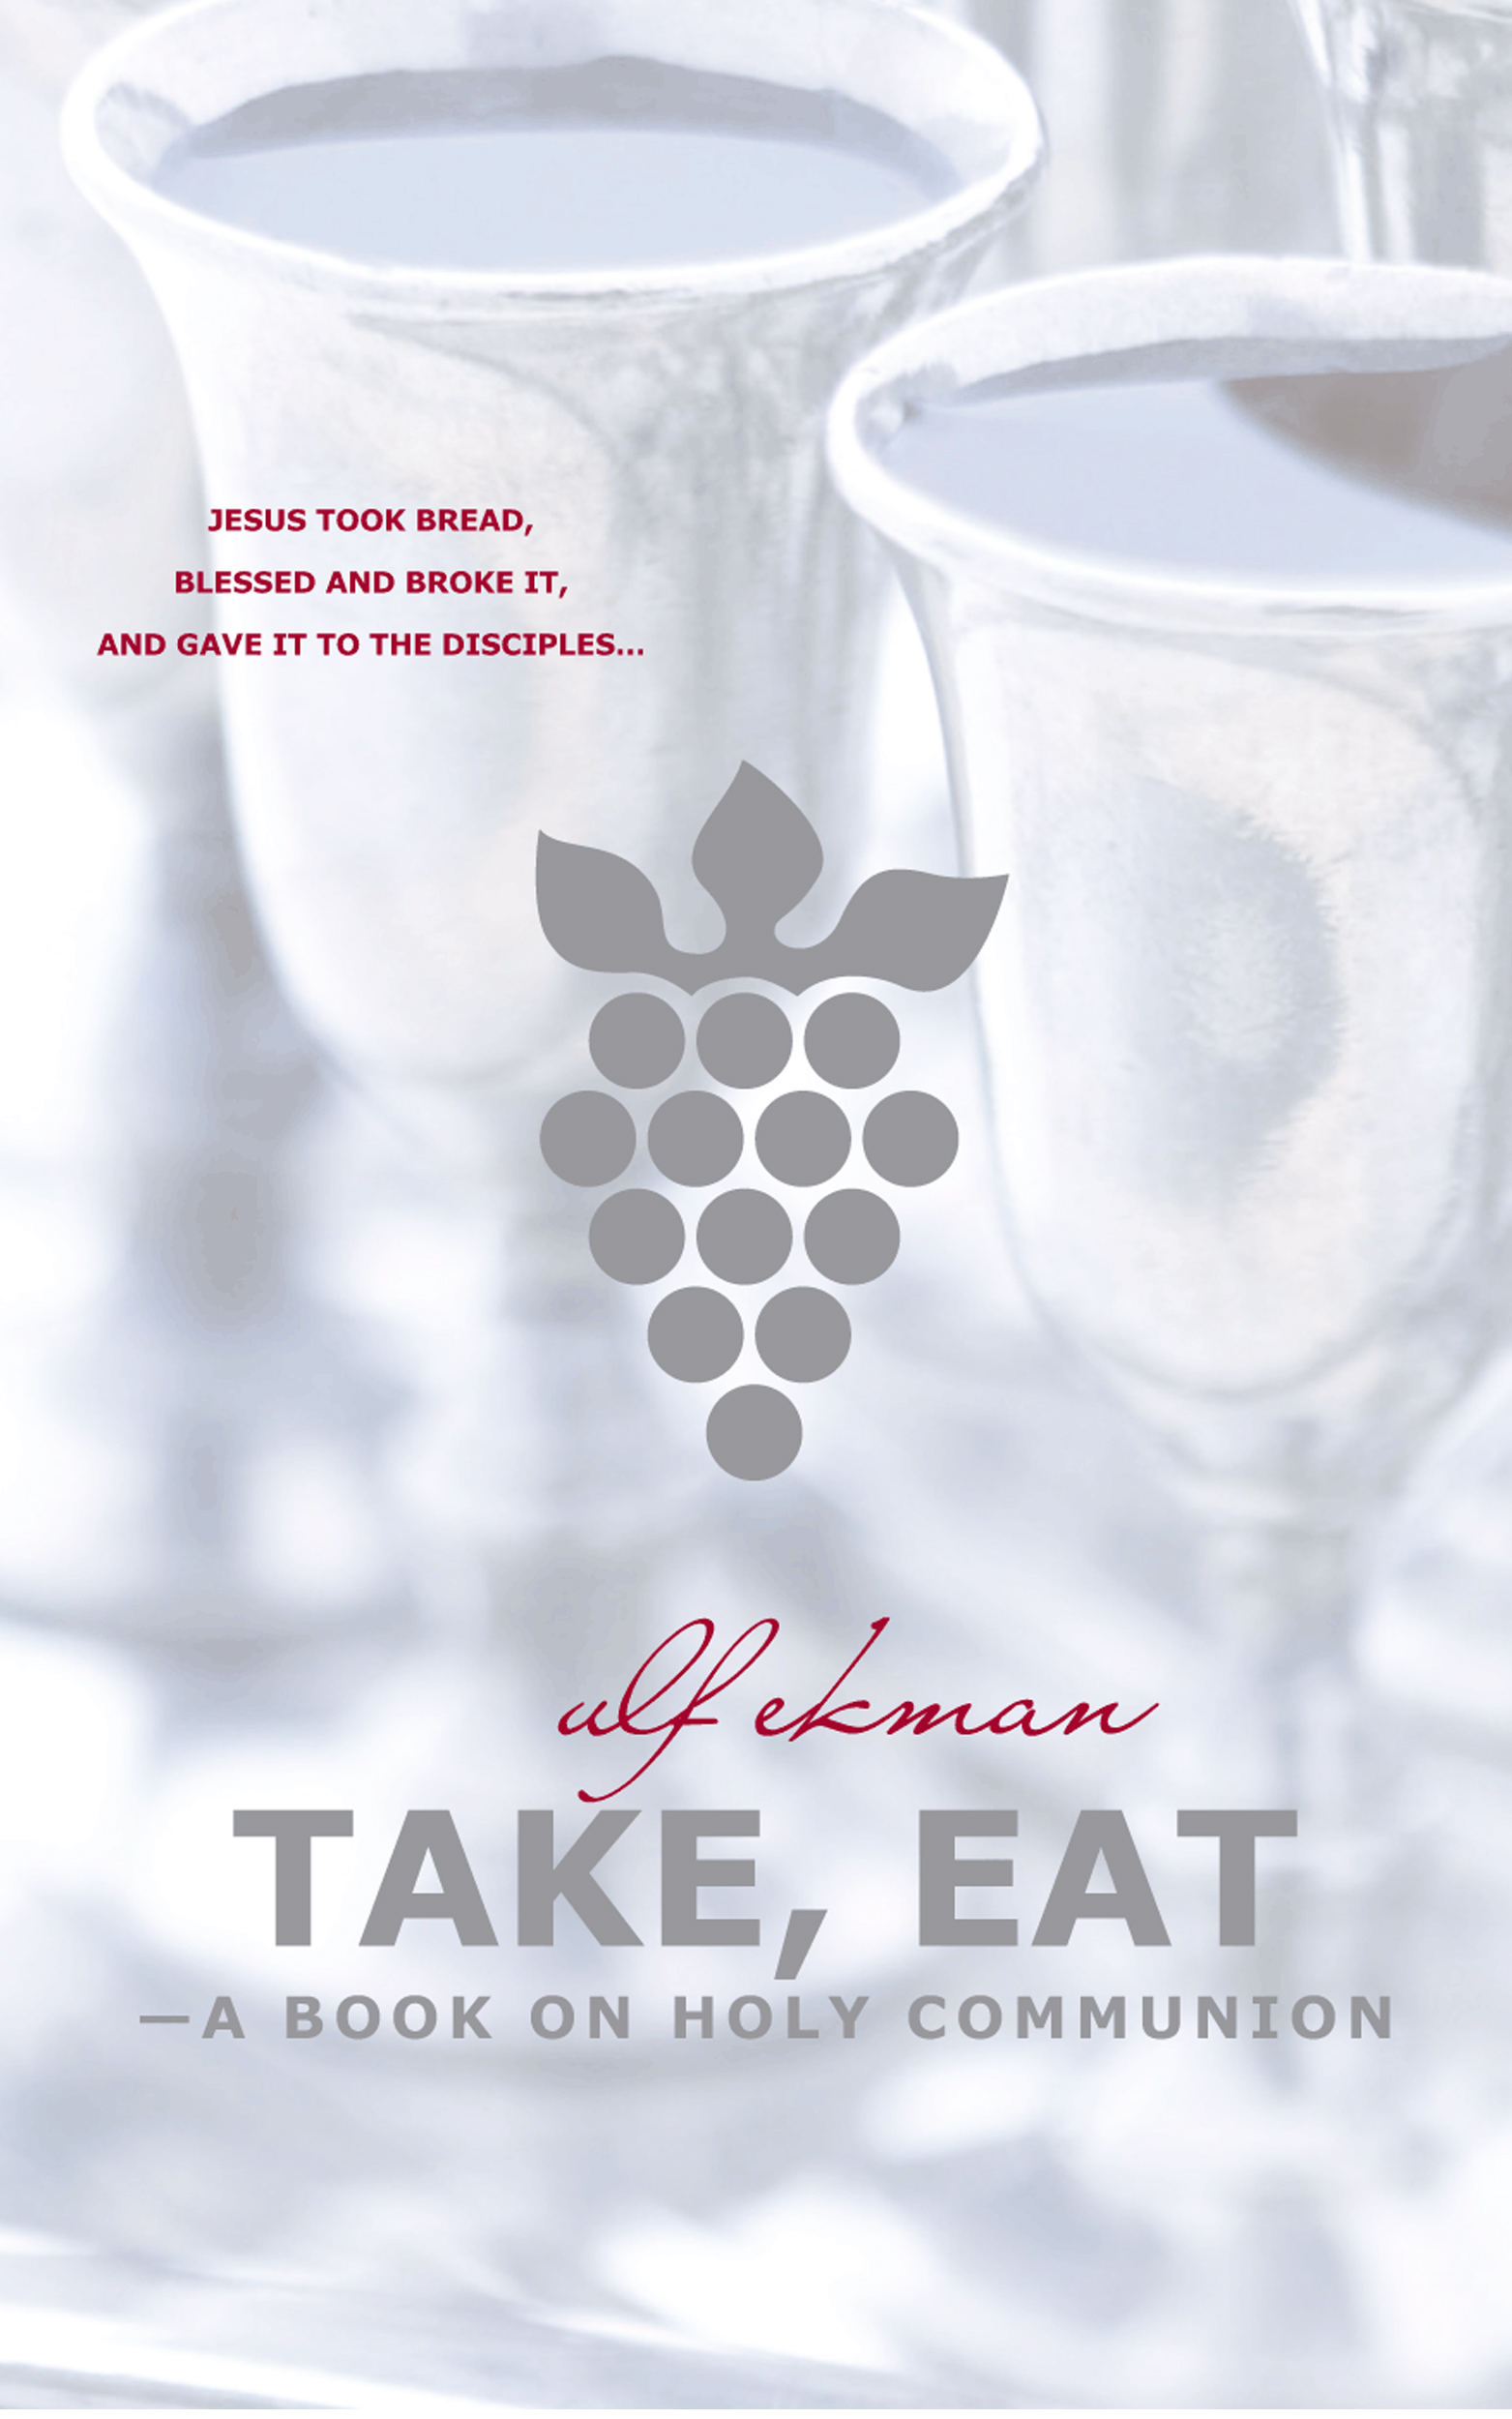 Take, Eat By: Ulf Ekman